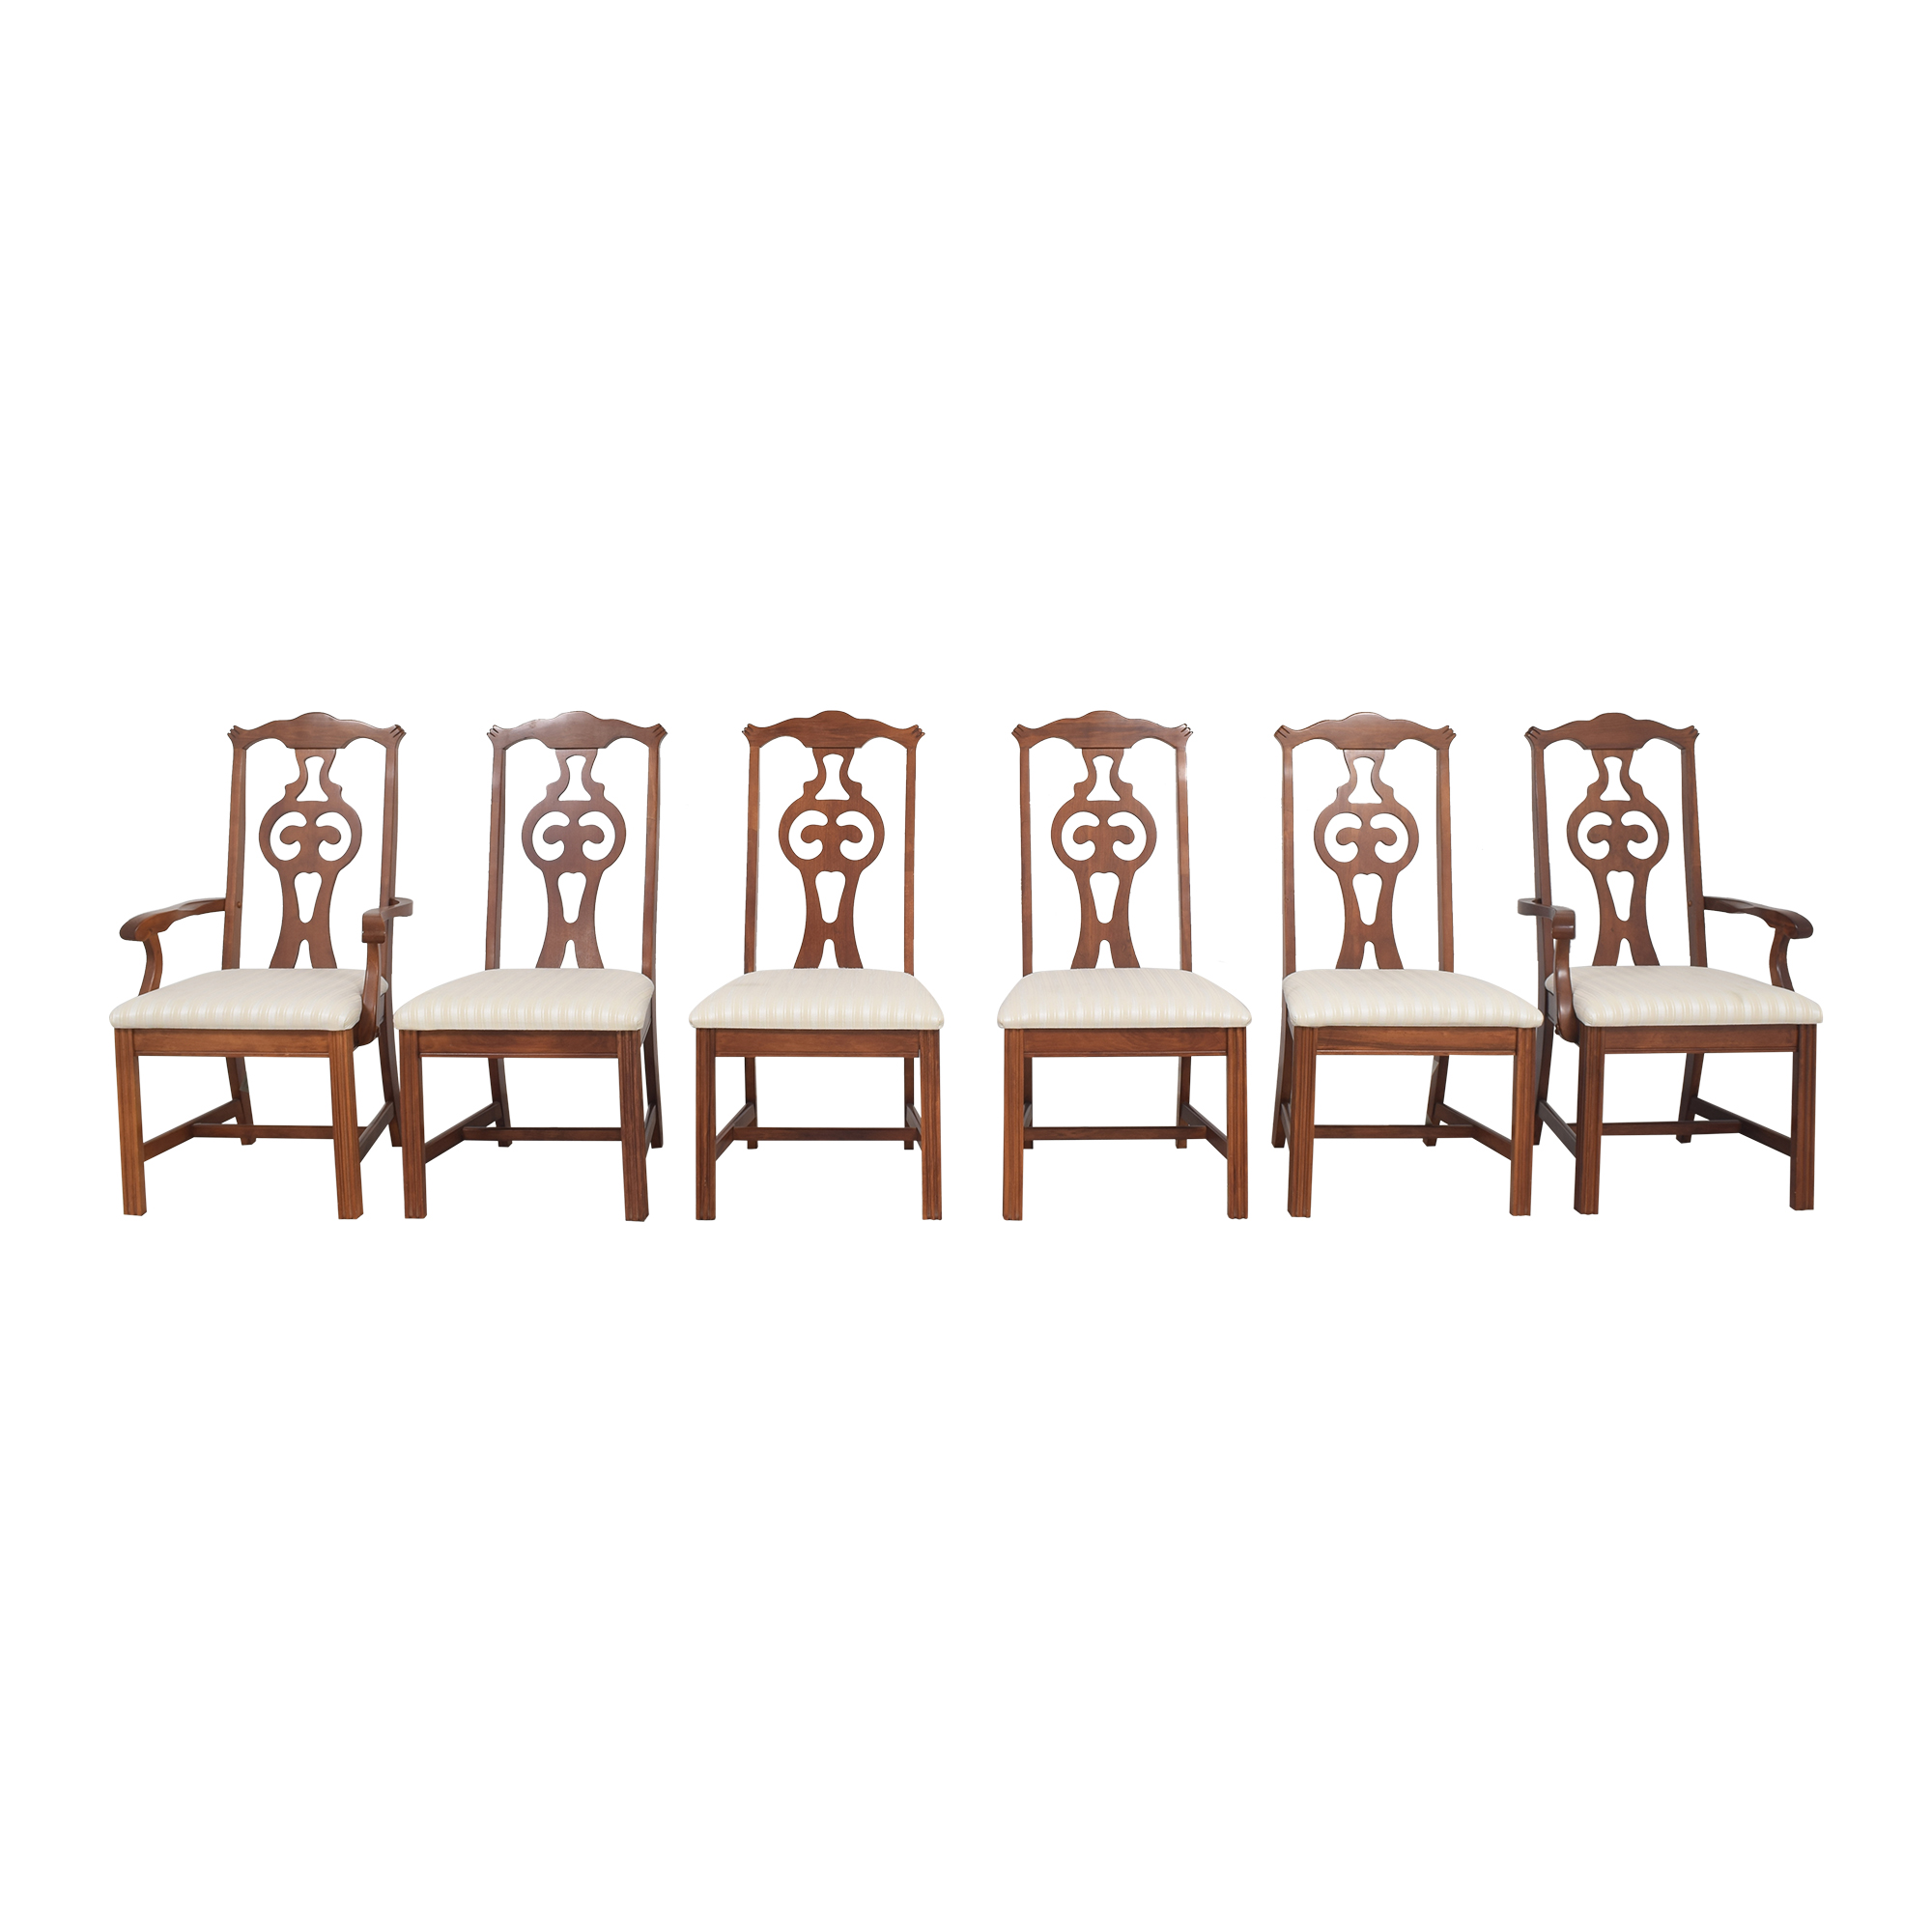 Bassett Furniture Upholstered Dining Chairs / Chairs